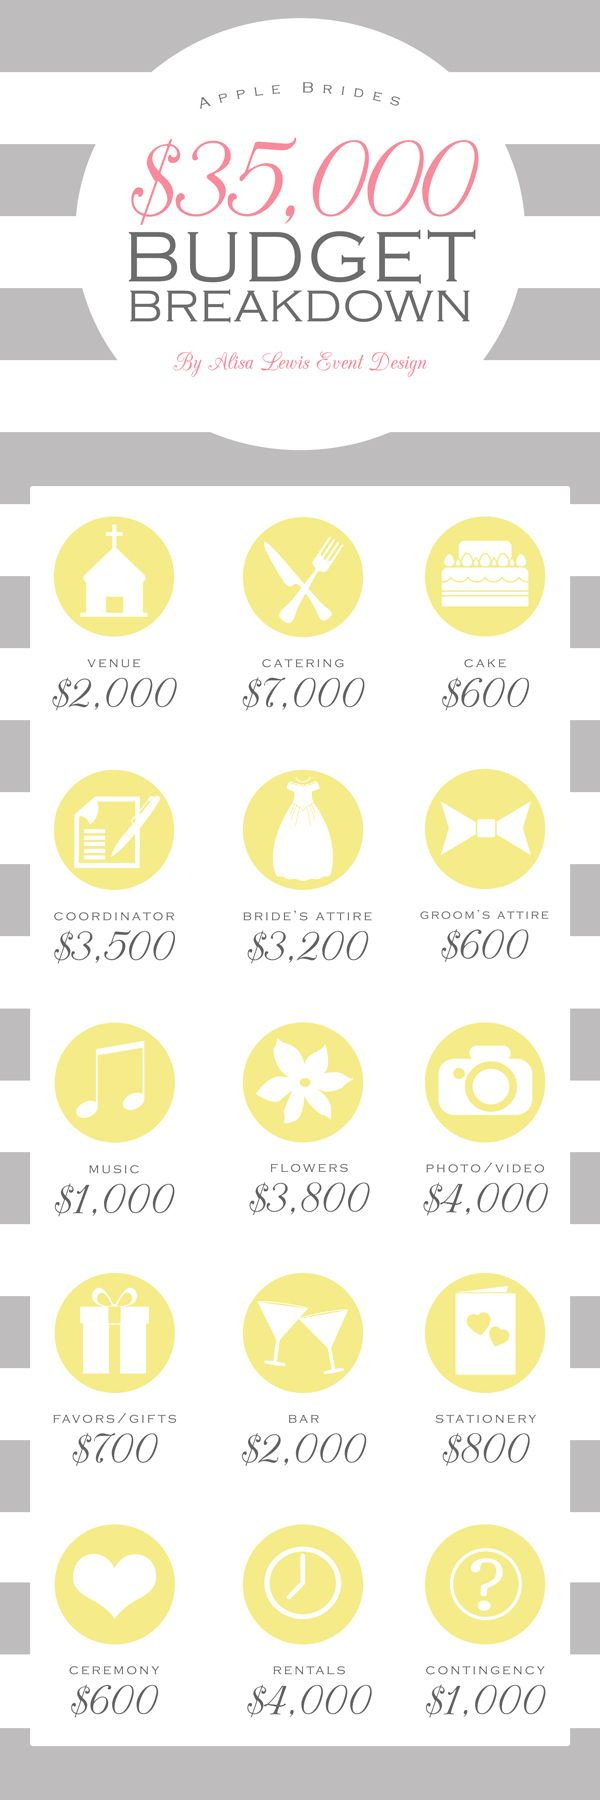 Best 25 wedding budget breakdown ideas on pinterest wedding budget breakdown for a 35000 wedding junglespirit Image collections